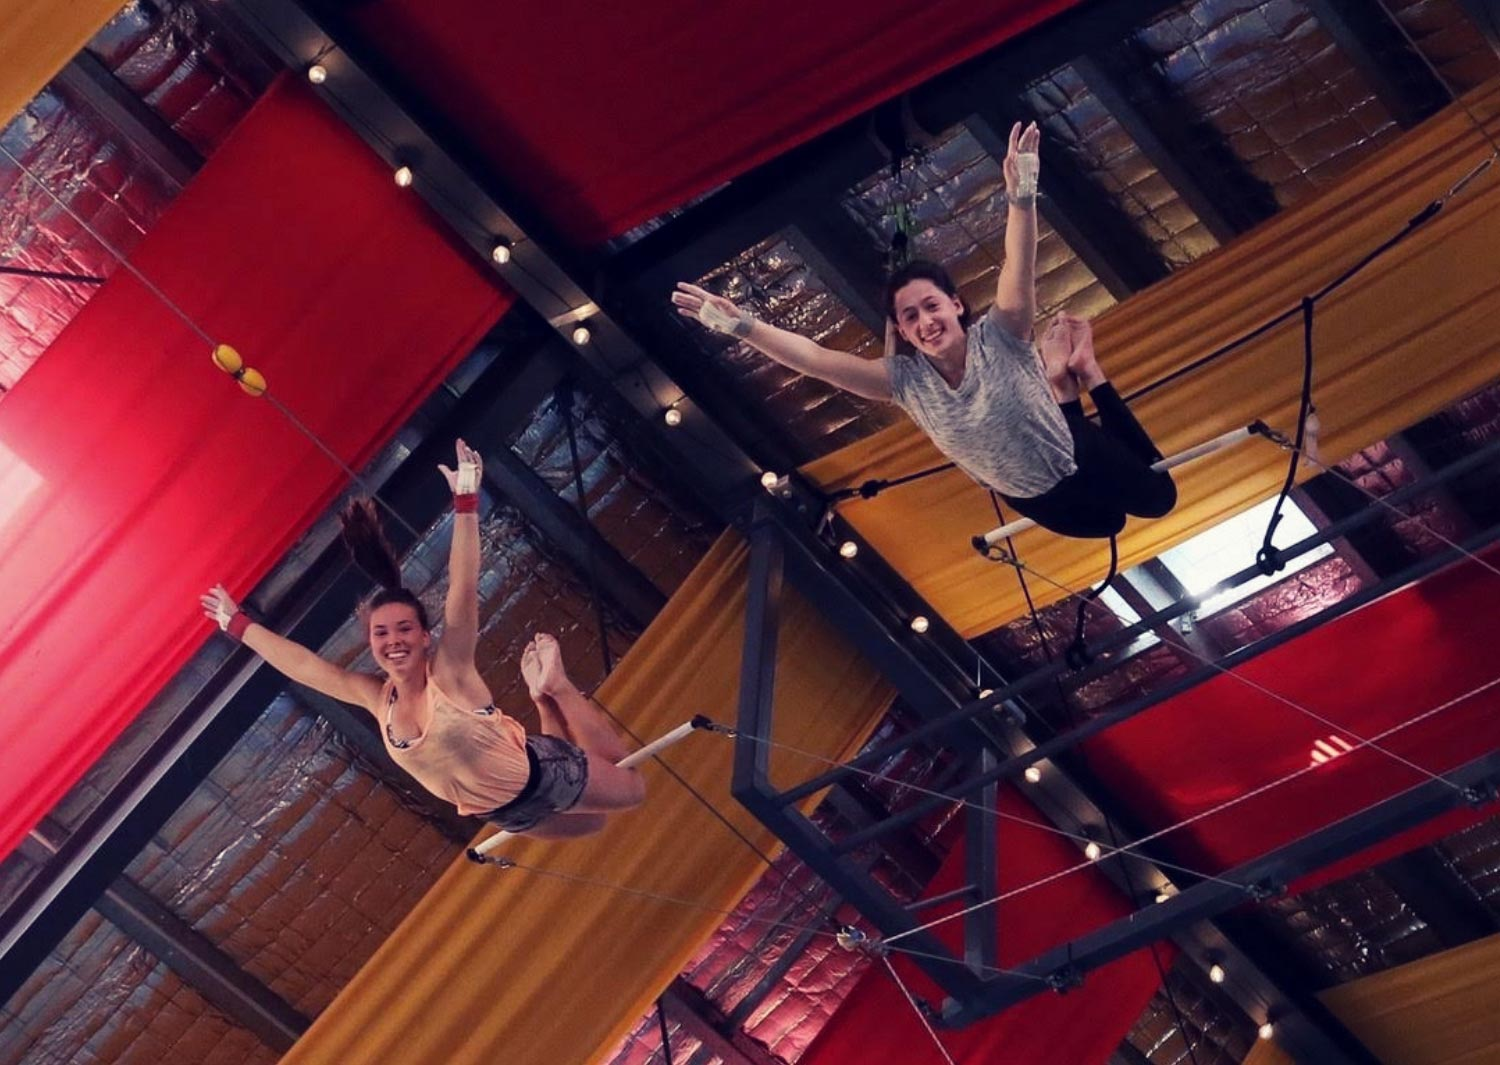 circus-arts-flying-trapeze-3-day-intensive-course-byron-bay-advanced-flying-out-of-lines-1